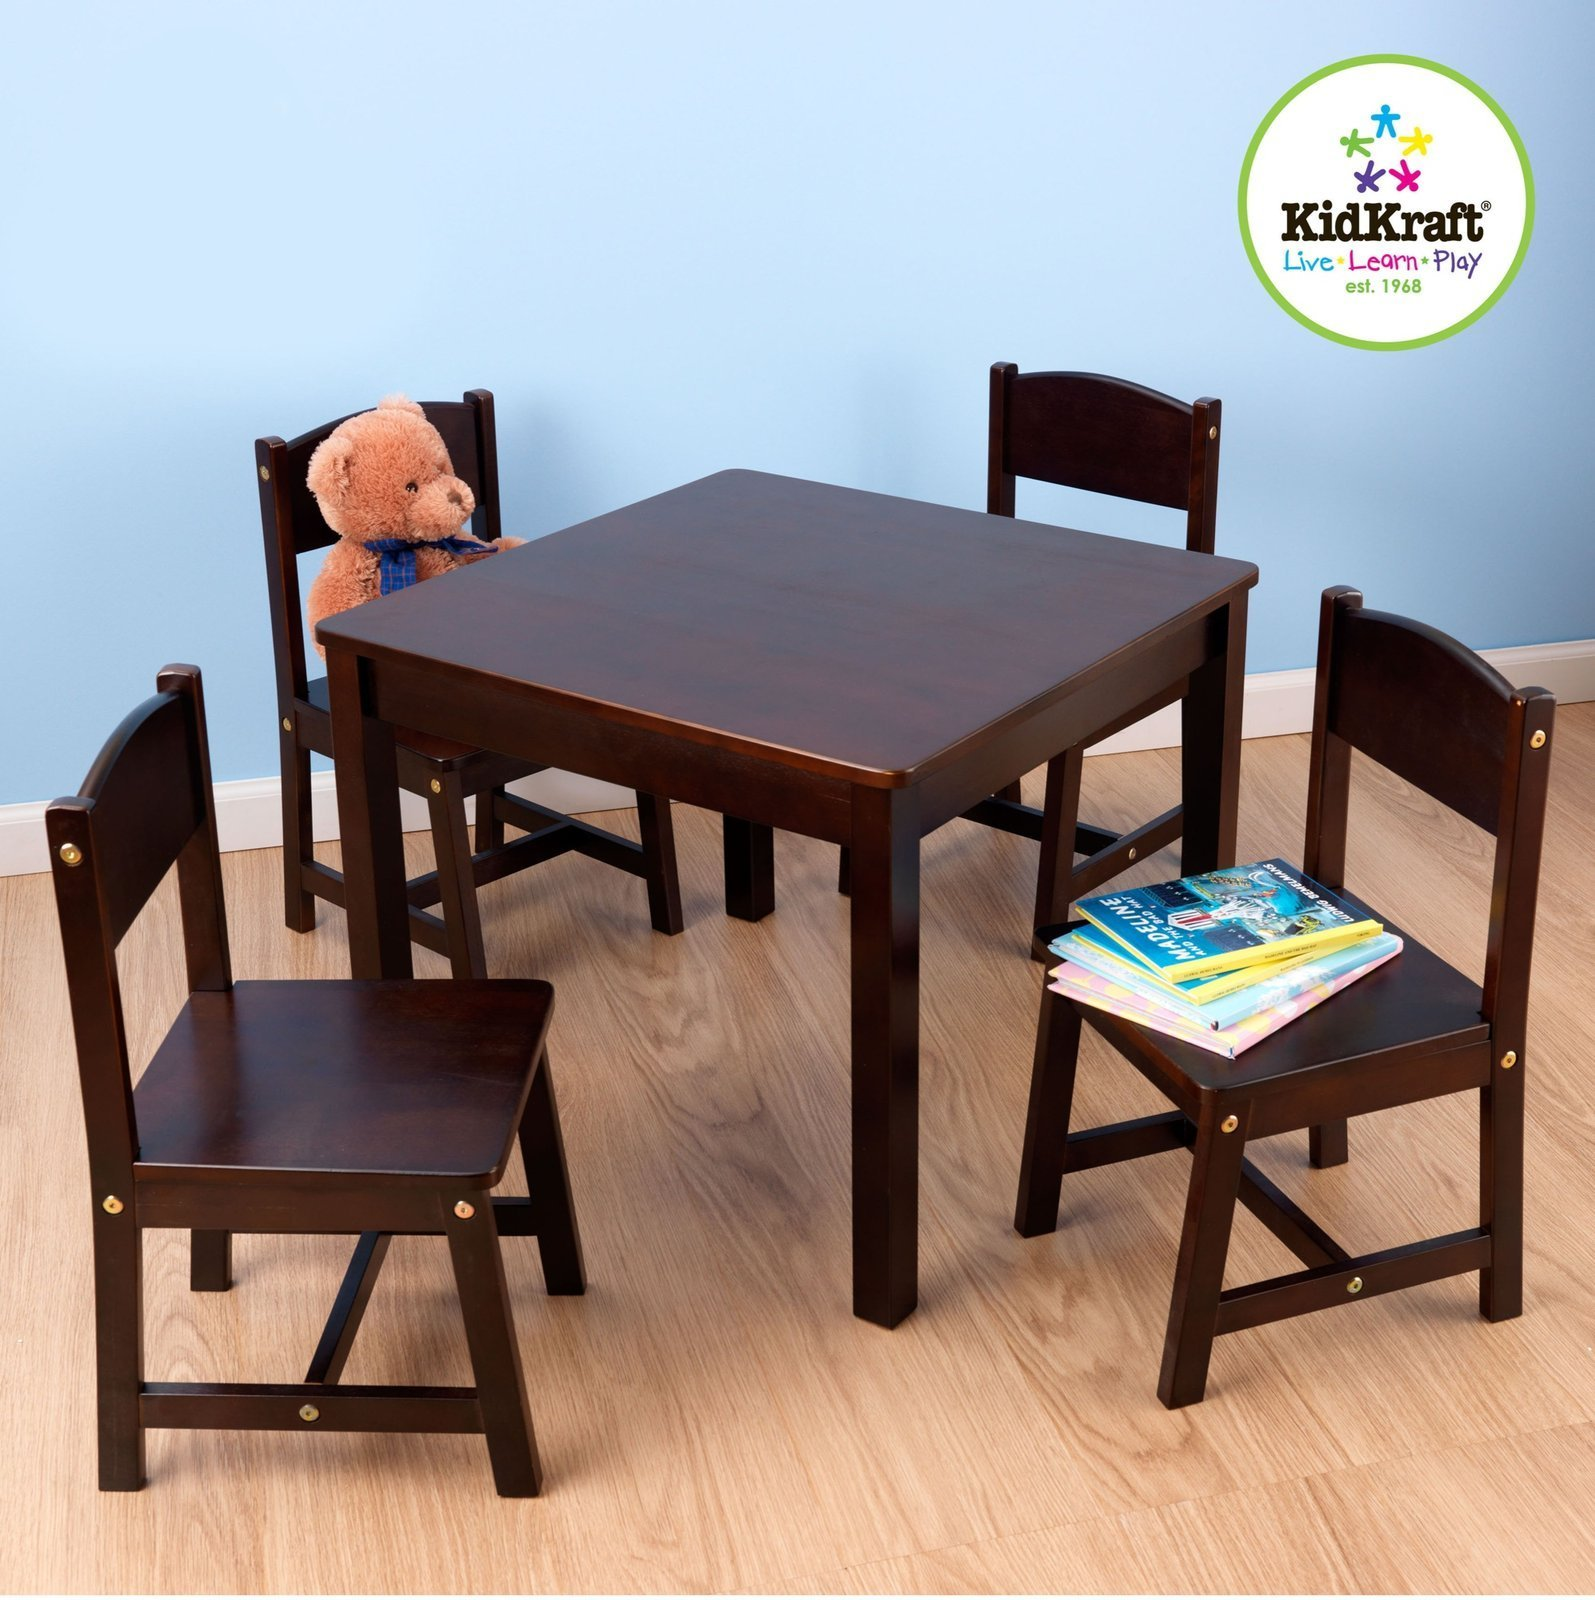 Farmhouse Table and 4 Chairs Set Children Play Reading Writing Study Table Set & Farmhouse Table and 4 Chairs Set Children Play Reading Writing Study ...